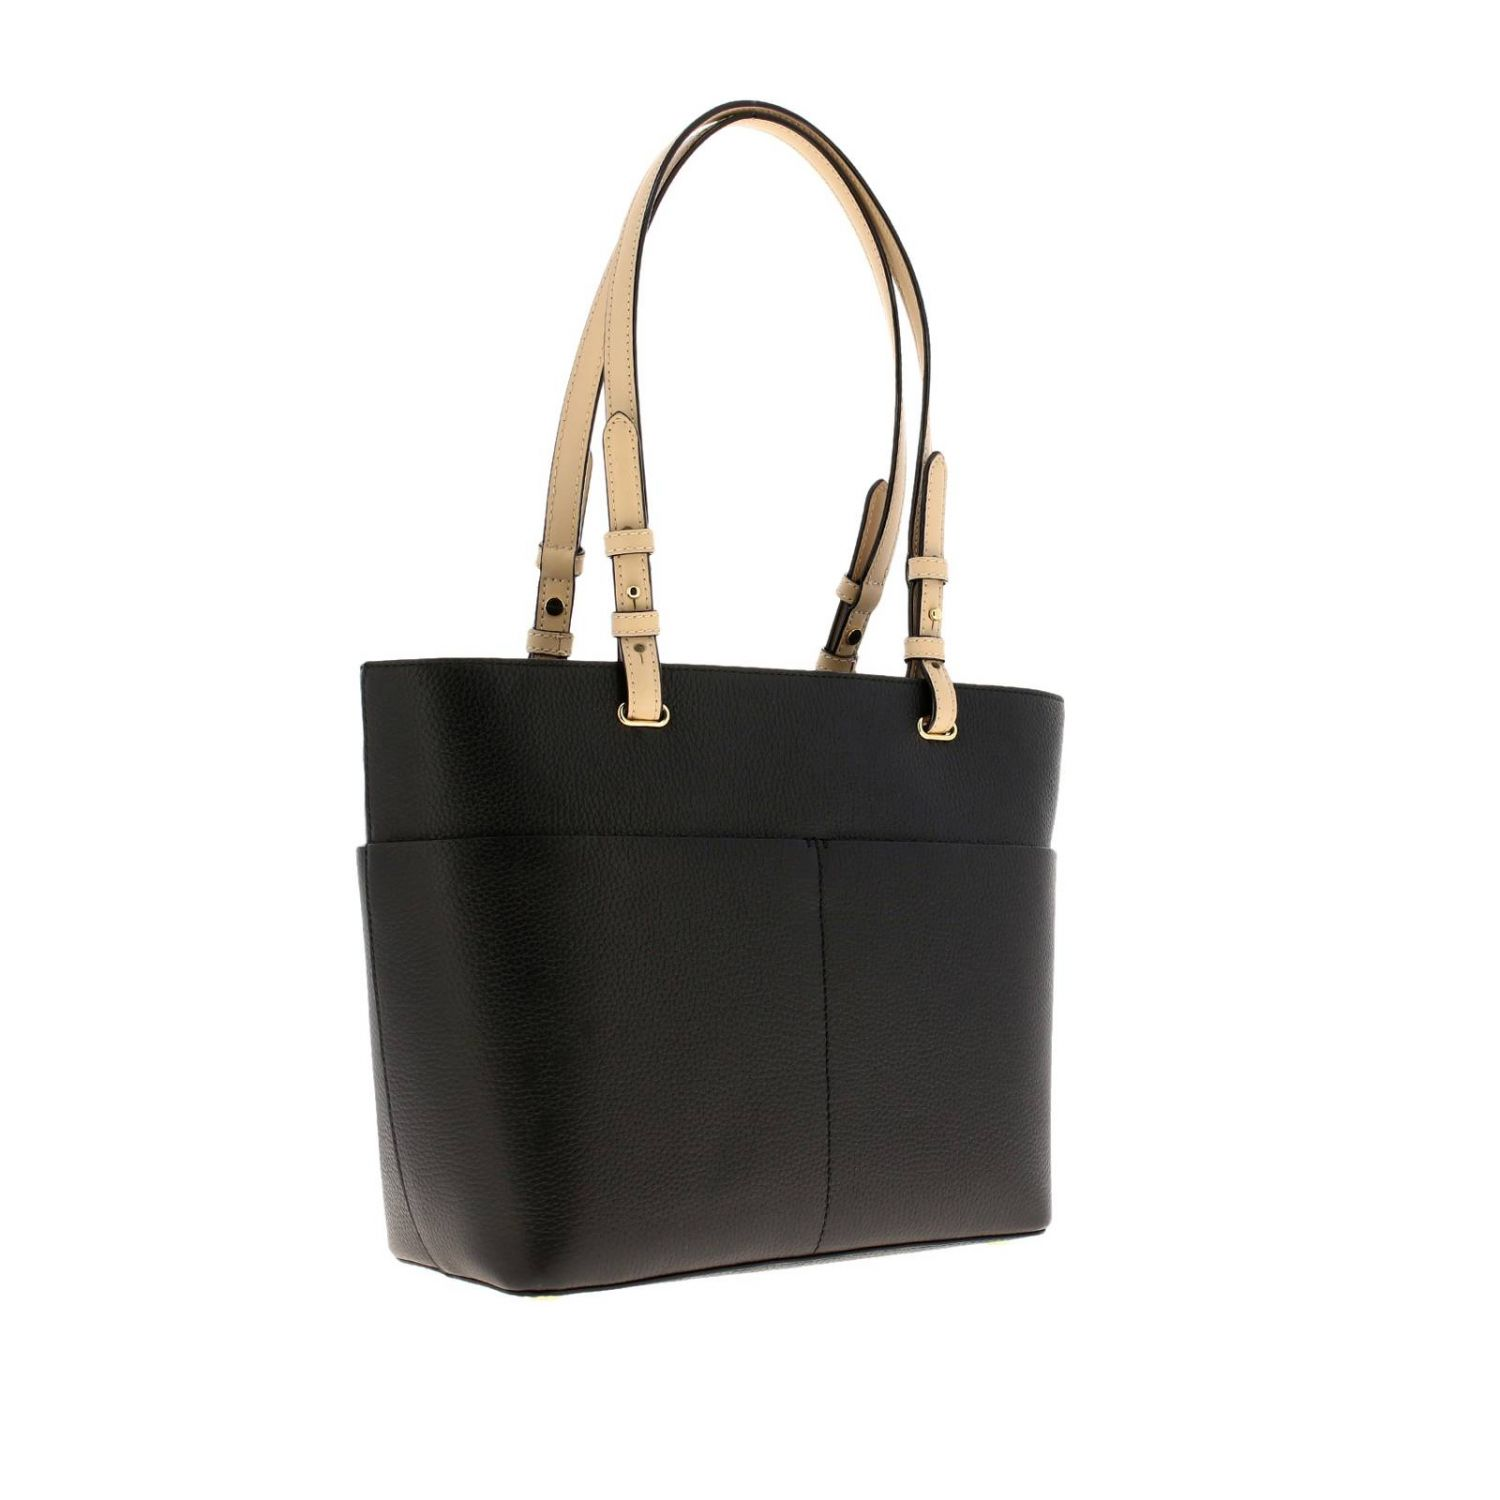 Bedford Michael Michael Kors medium shopping bag in textured leather with logo black 3